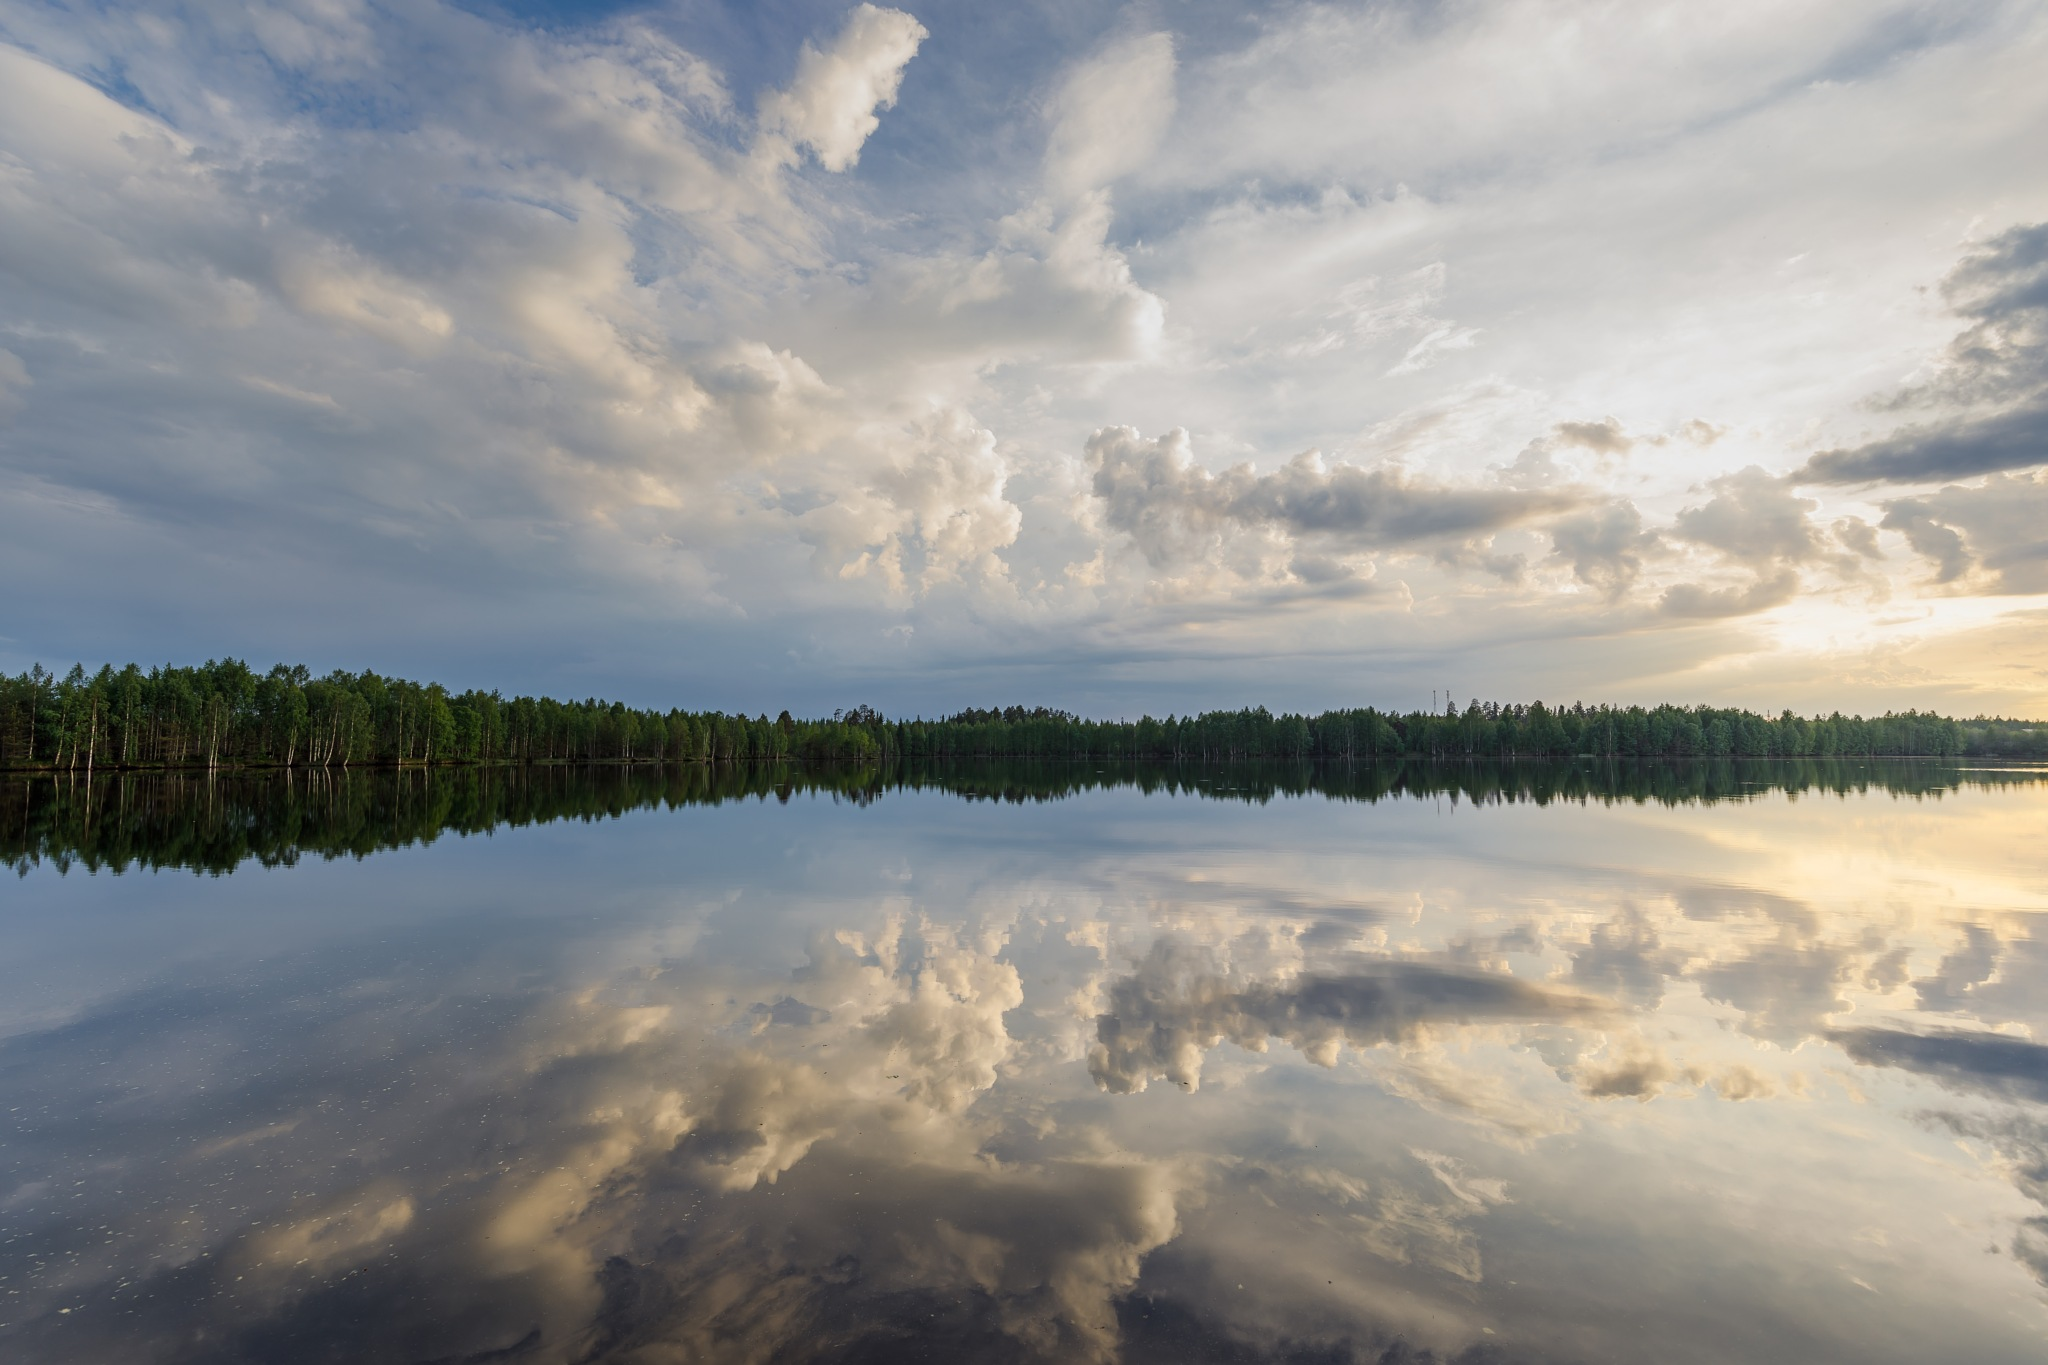 Reflection by Andrey